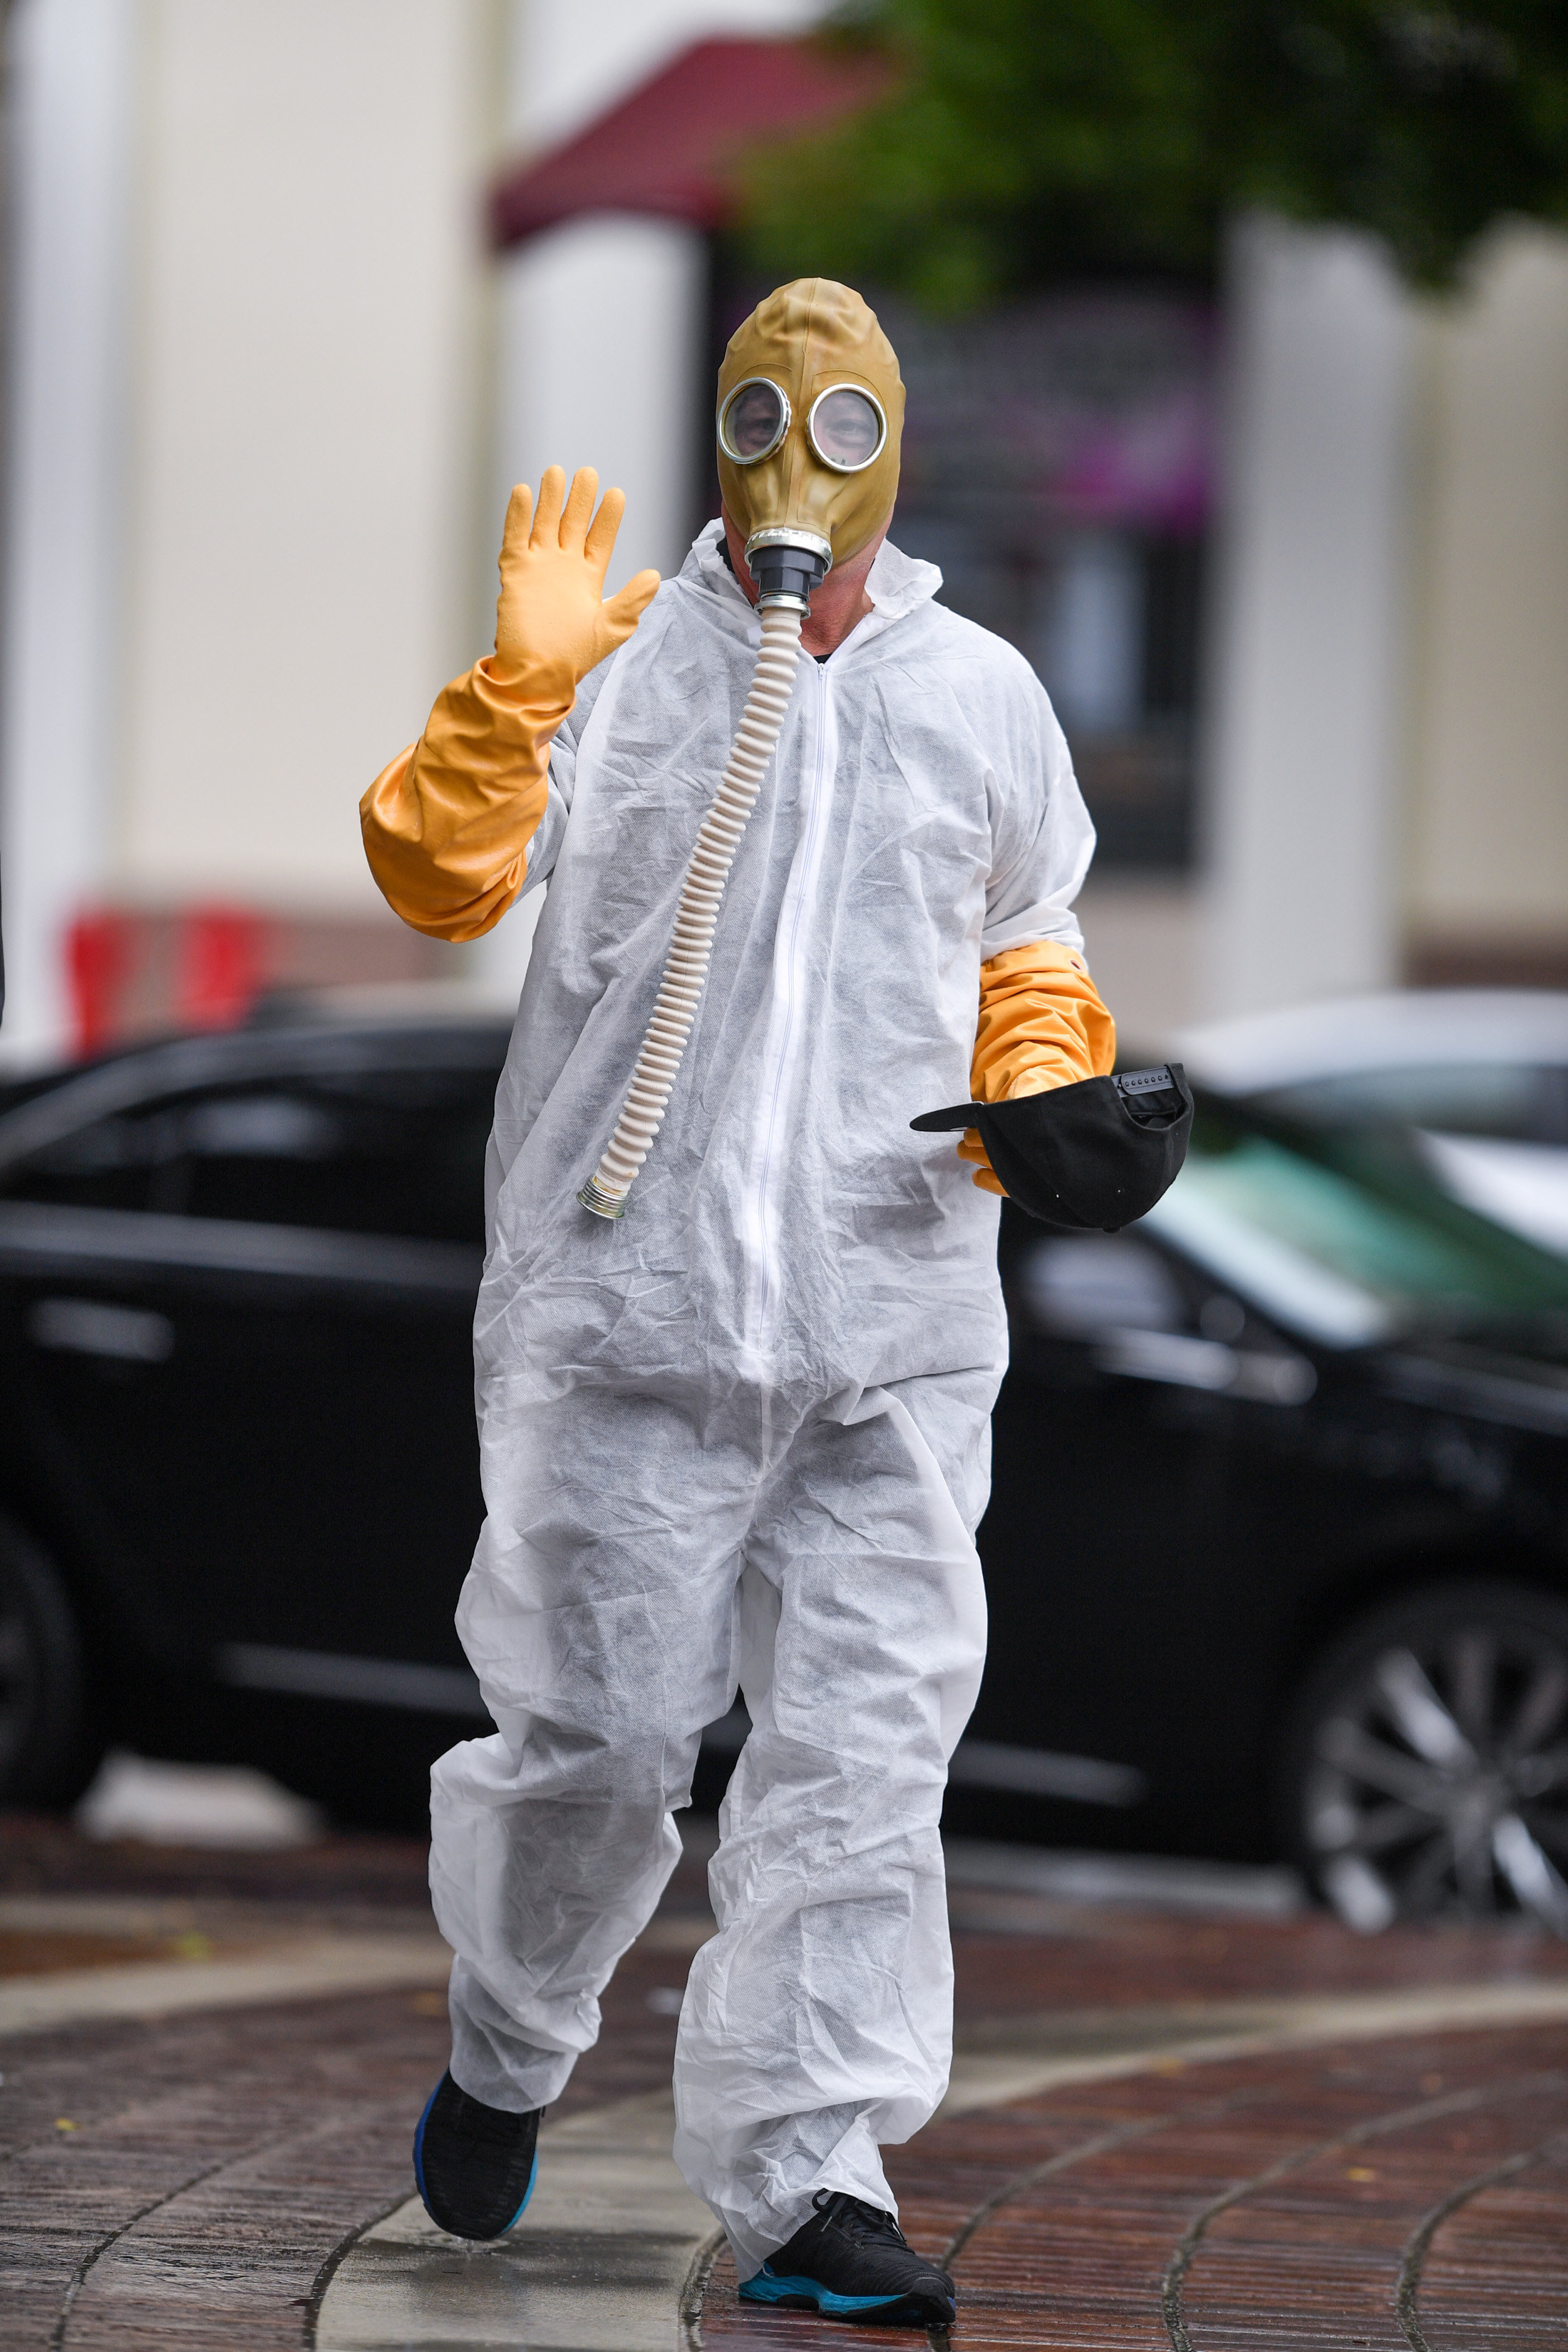 Howie Mandel Wore A Hazmat Suit And Gas Mask To The Set Of America S Got Talent Amid The Coronavirus Outbreak